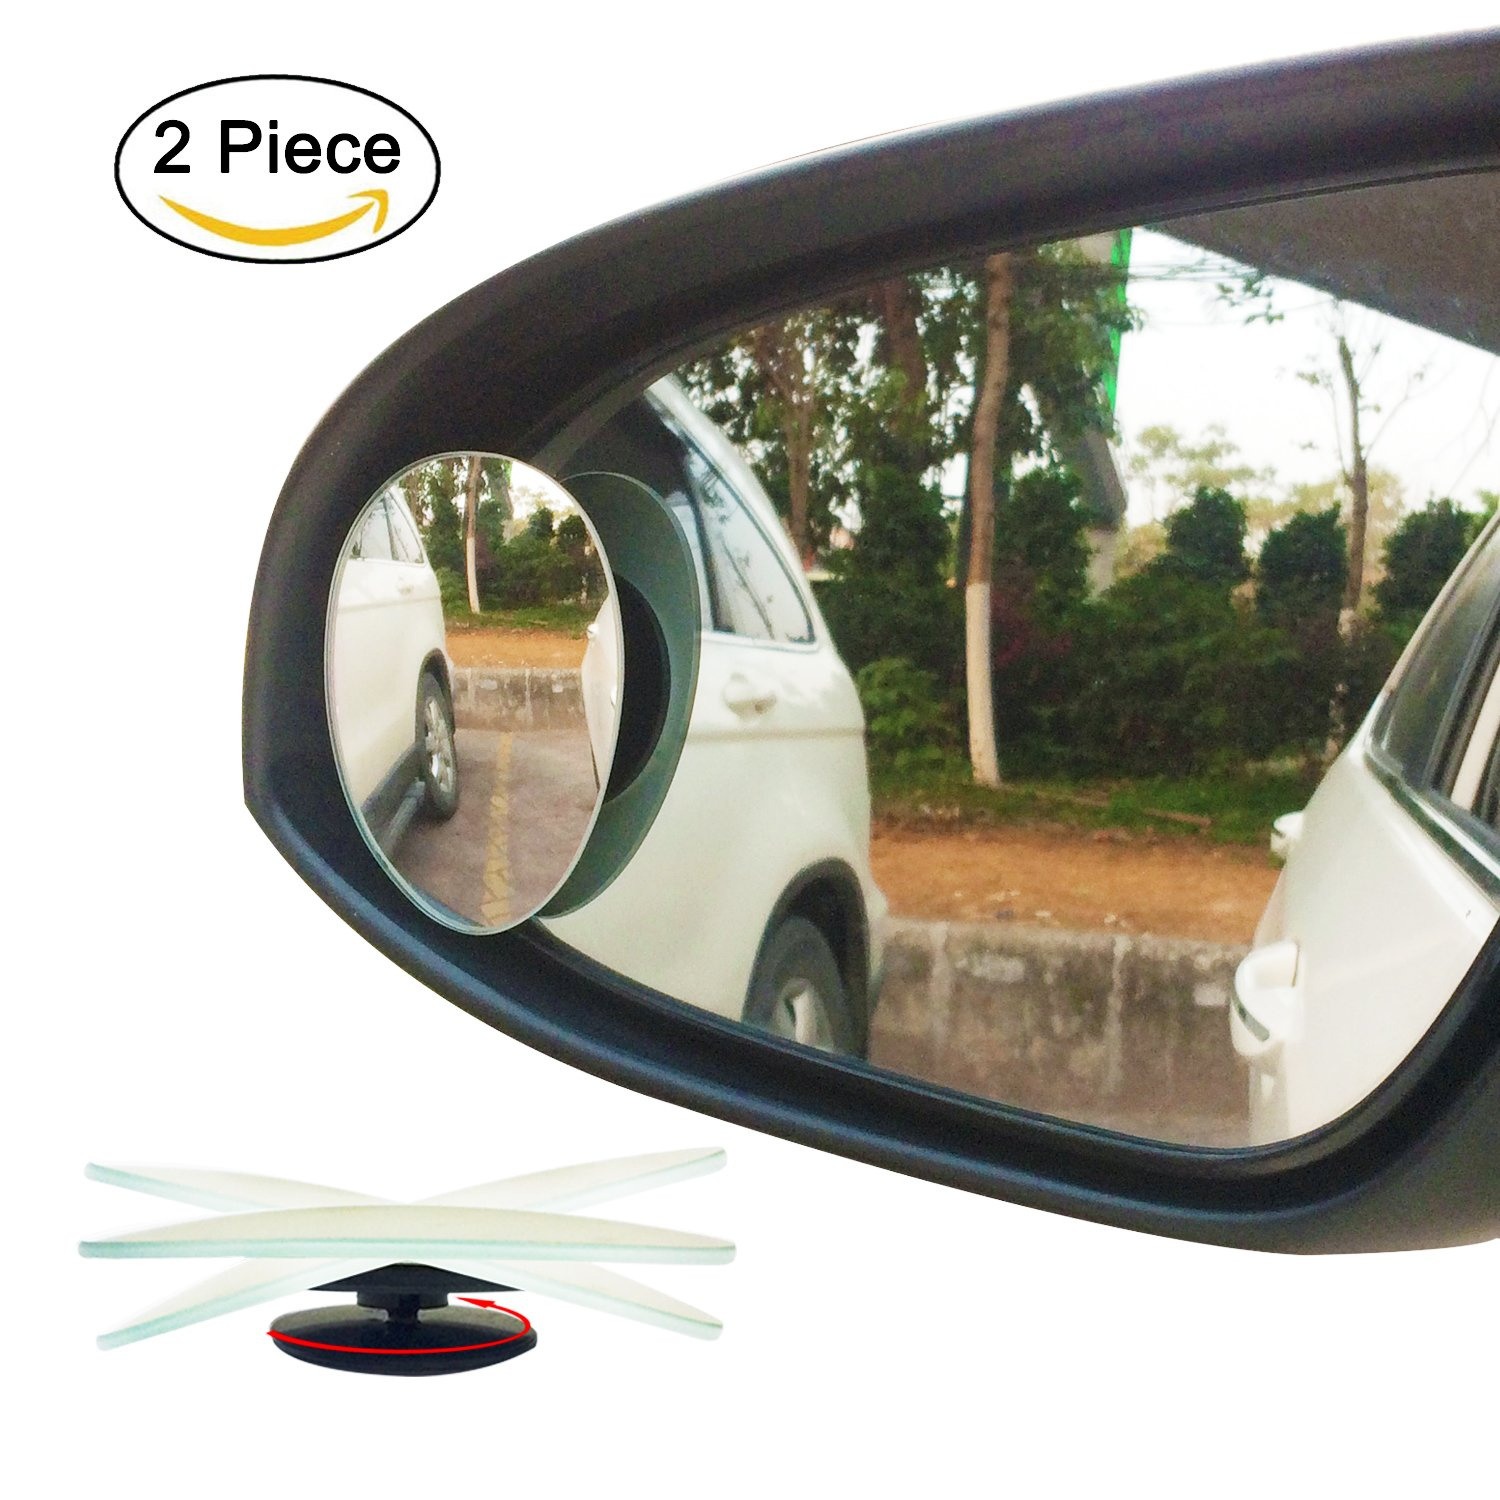 Ampper egg shape blind spot mirrors frameless 360 degree rotate sway adjustabe hd glass convex wide angle rear view car suv stick on lens pack of 2